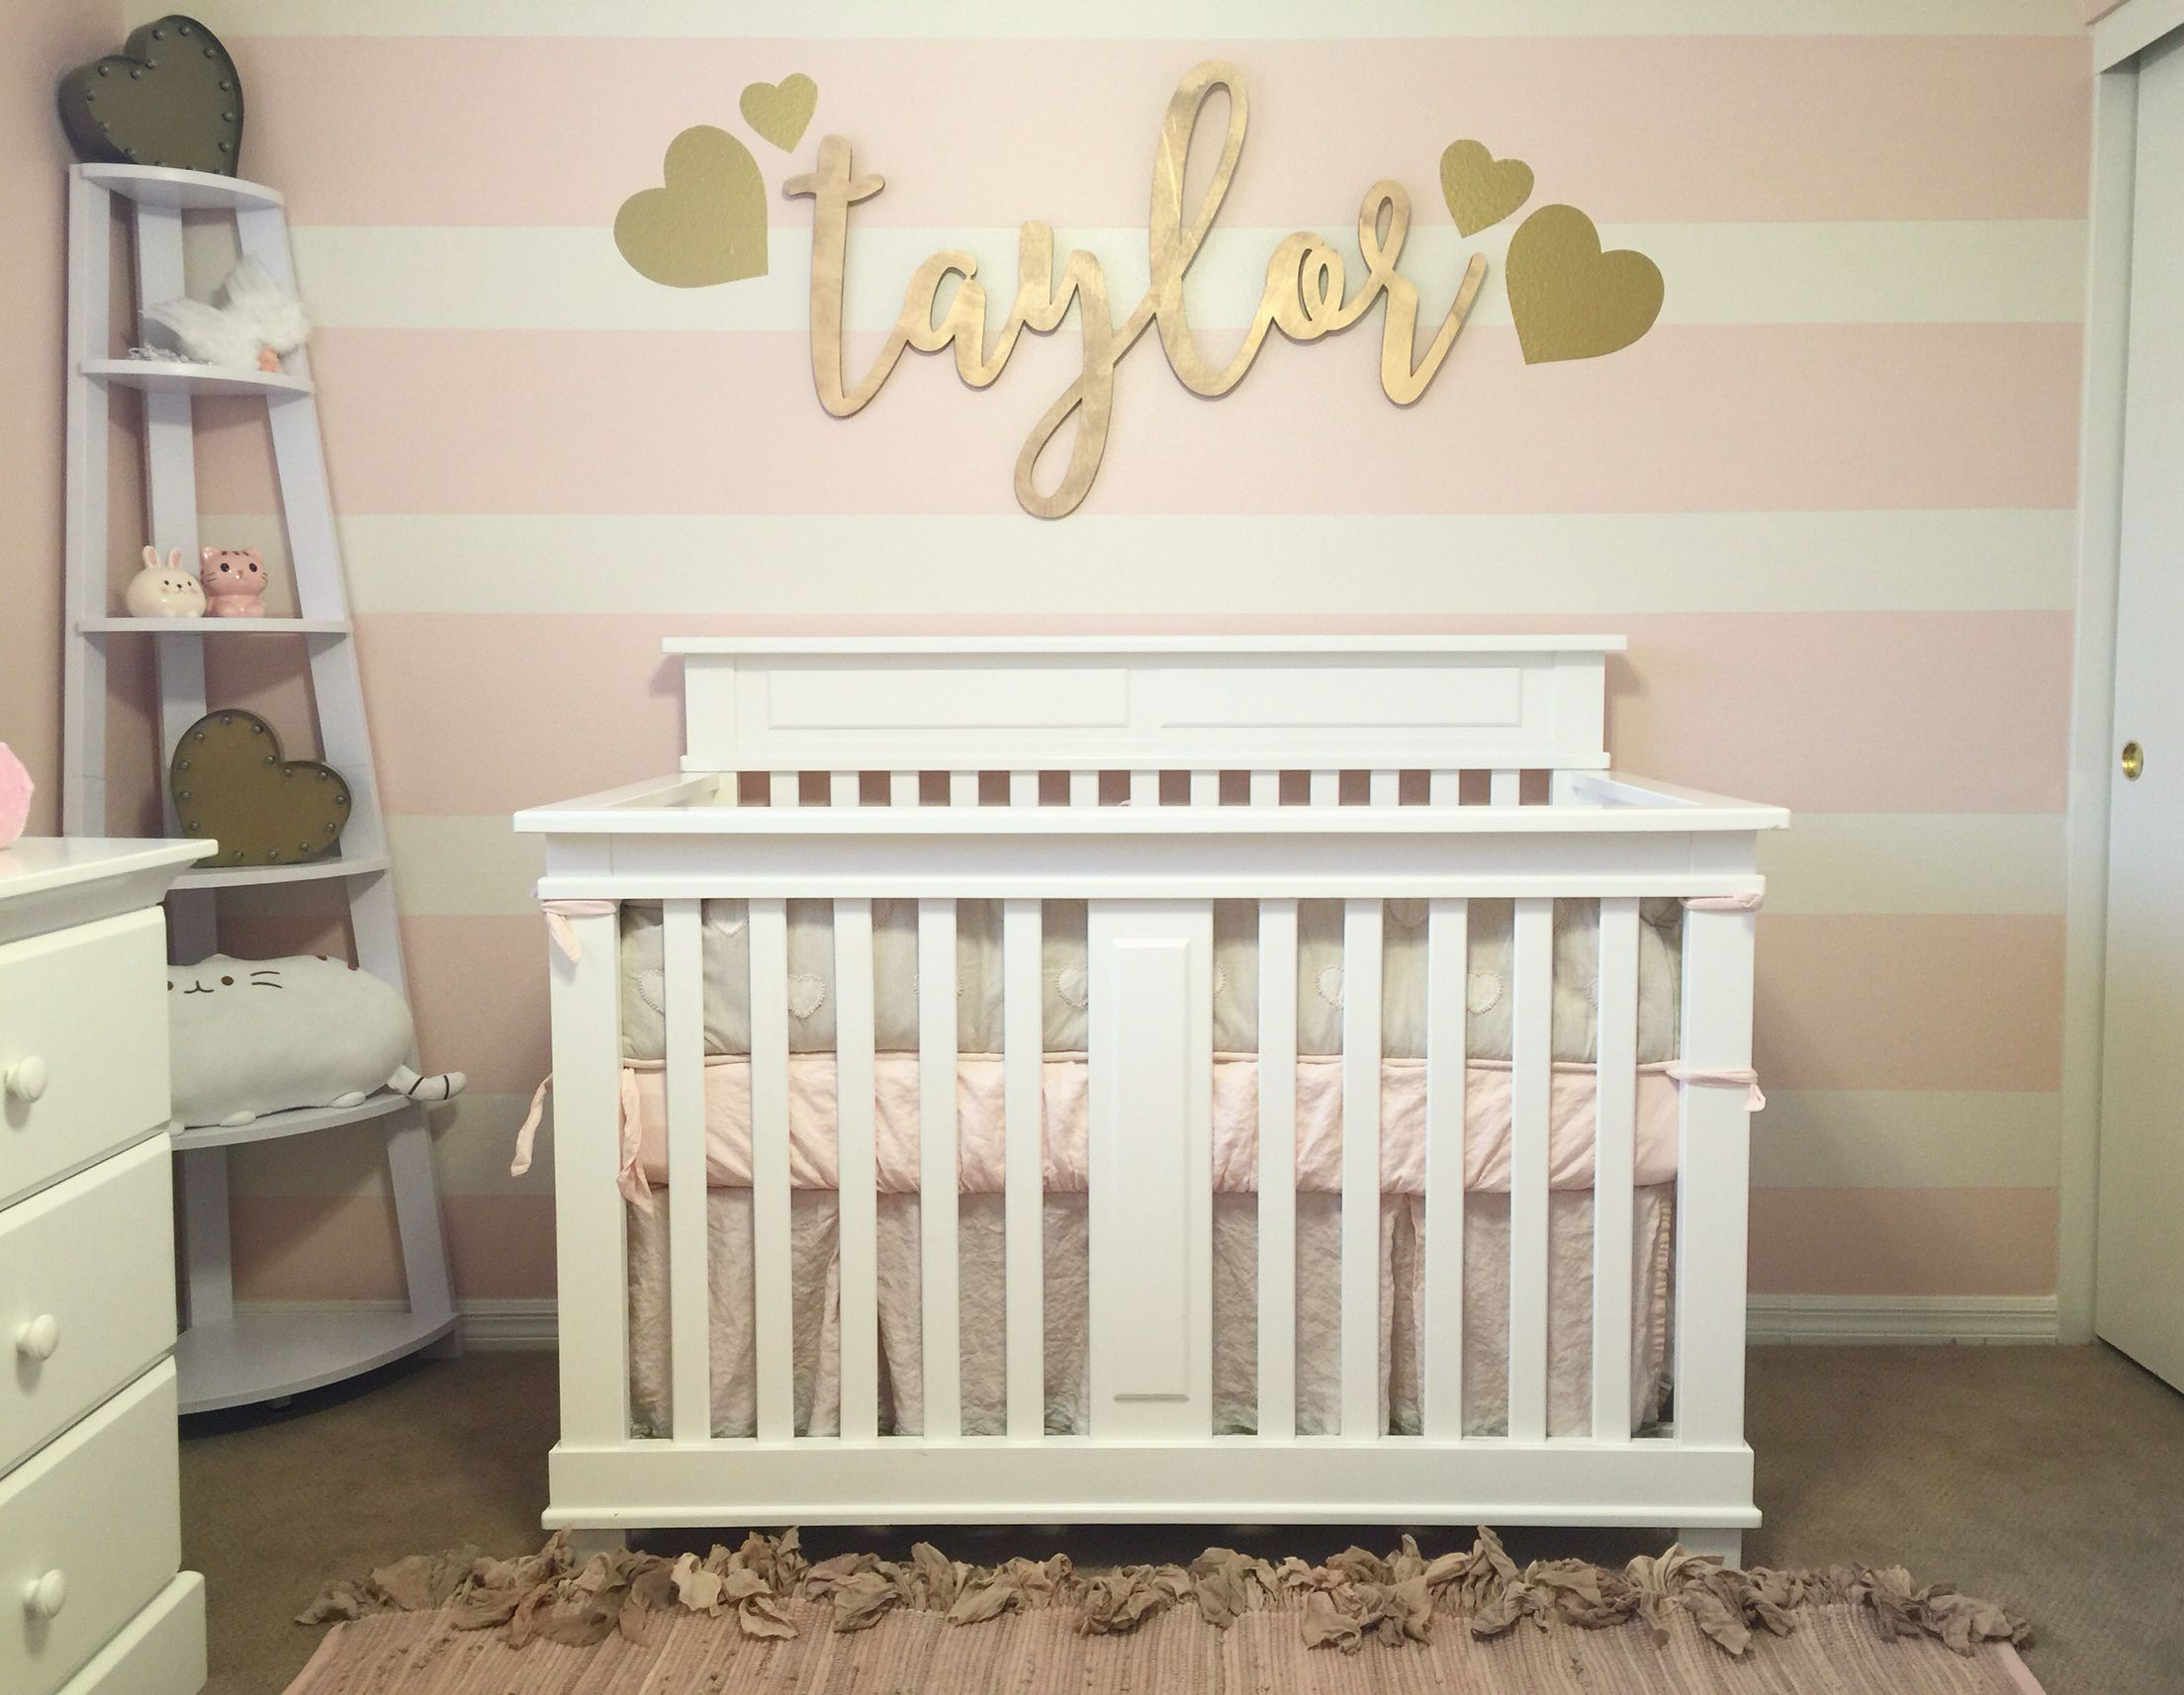 Pink and gold nursery for our baby girl. Pink and cream